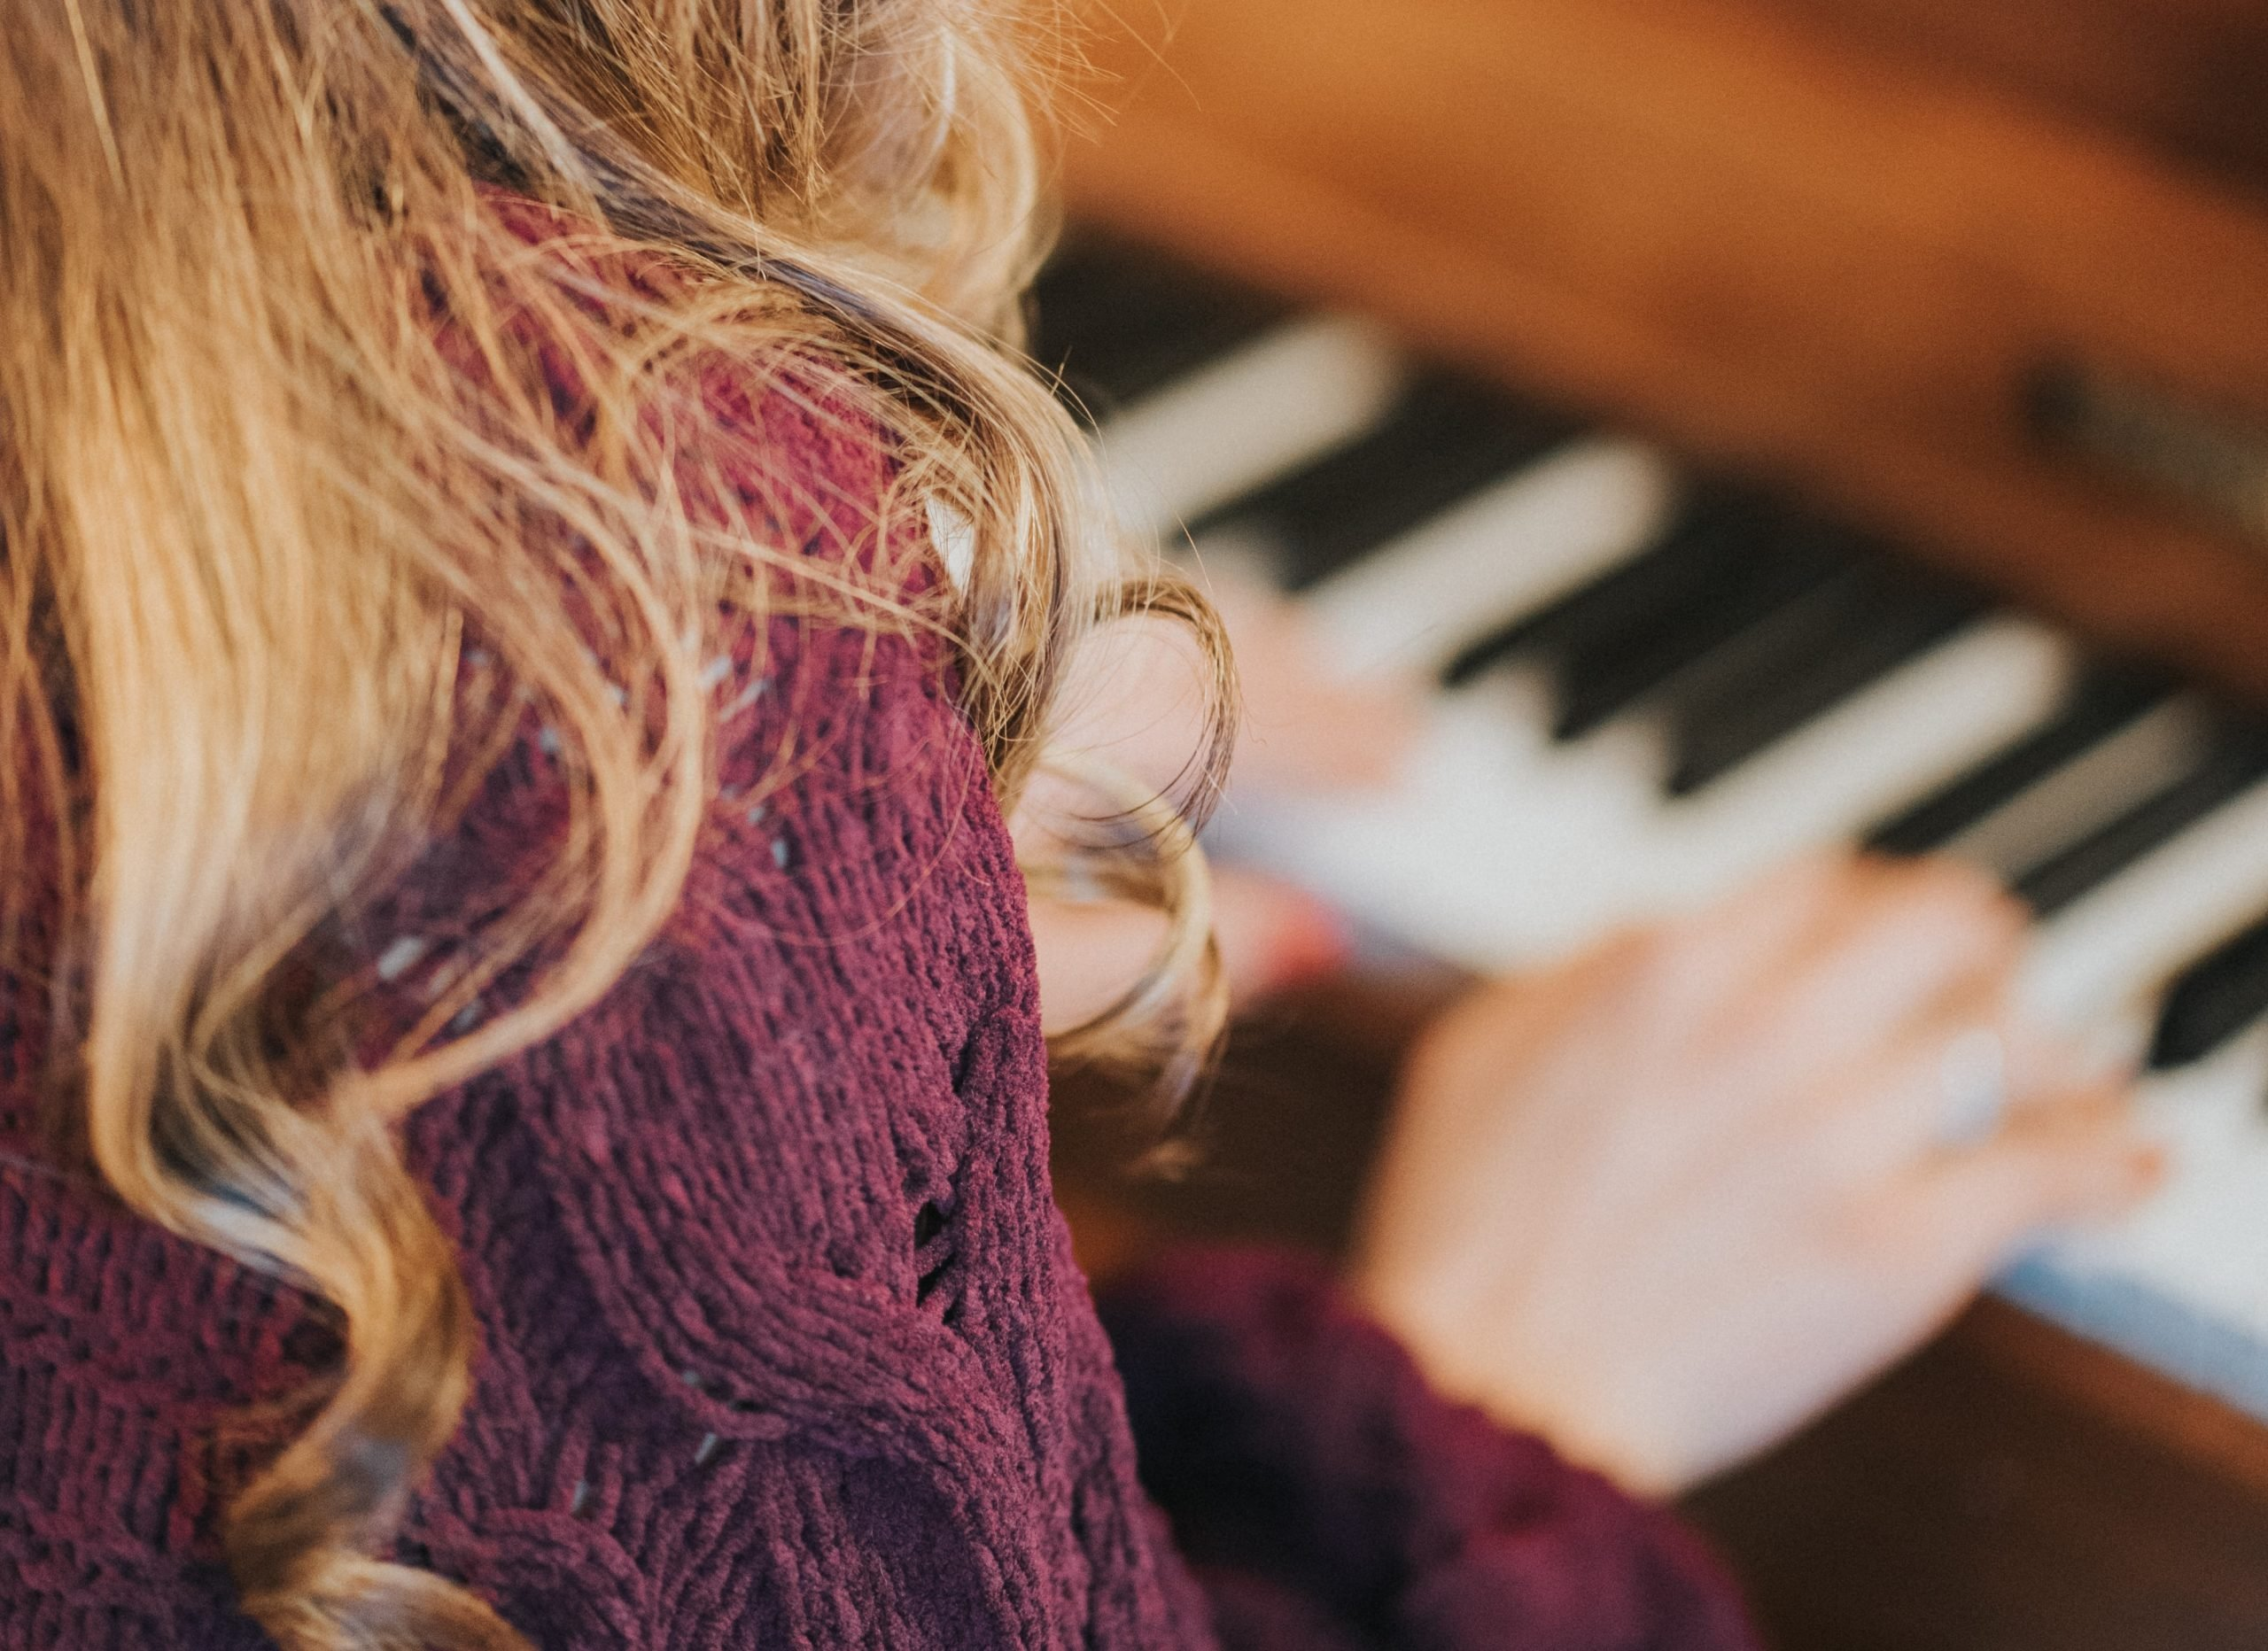 The Top Ten List of Blog Posts Every Piano Teacher Should Read